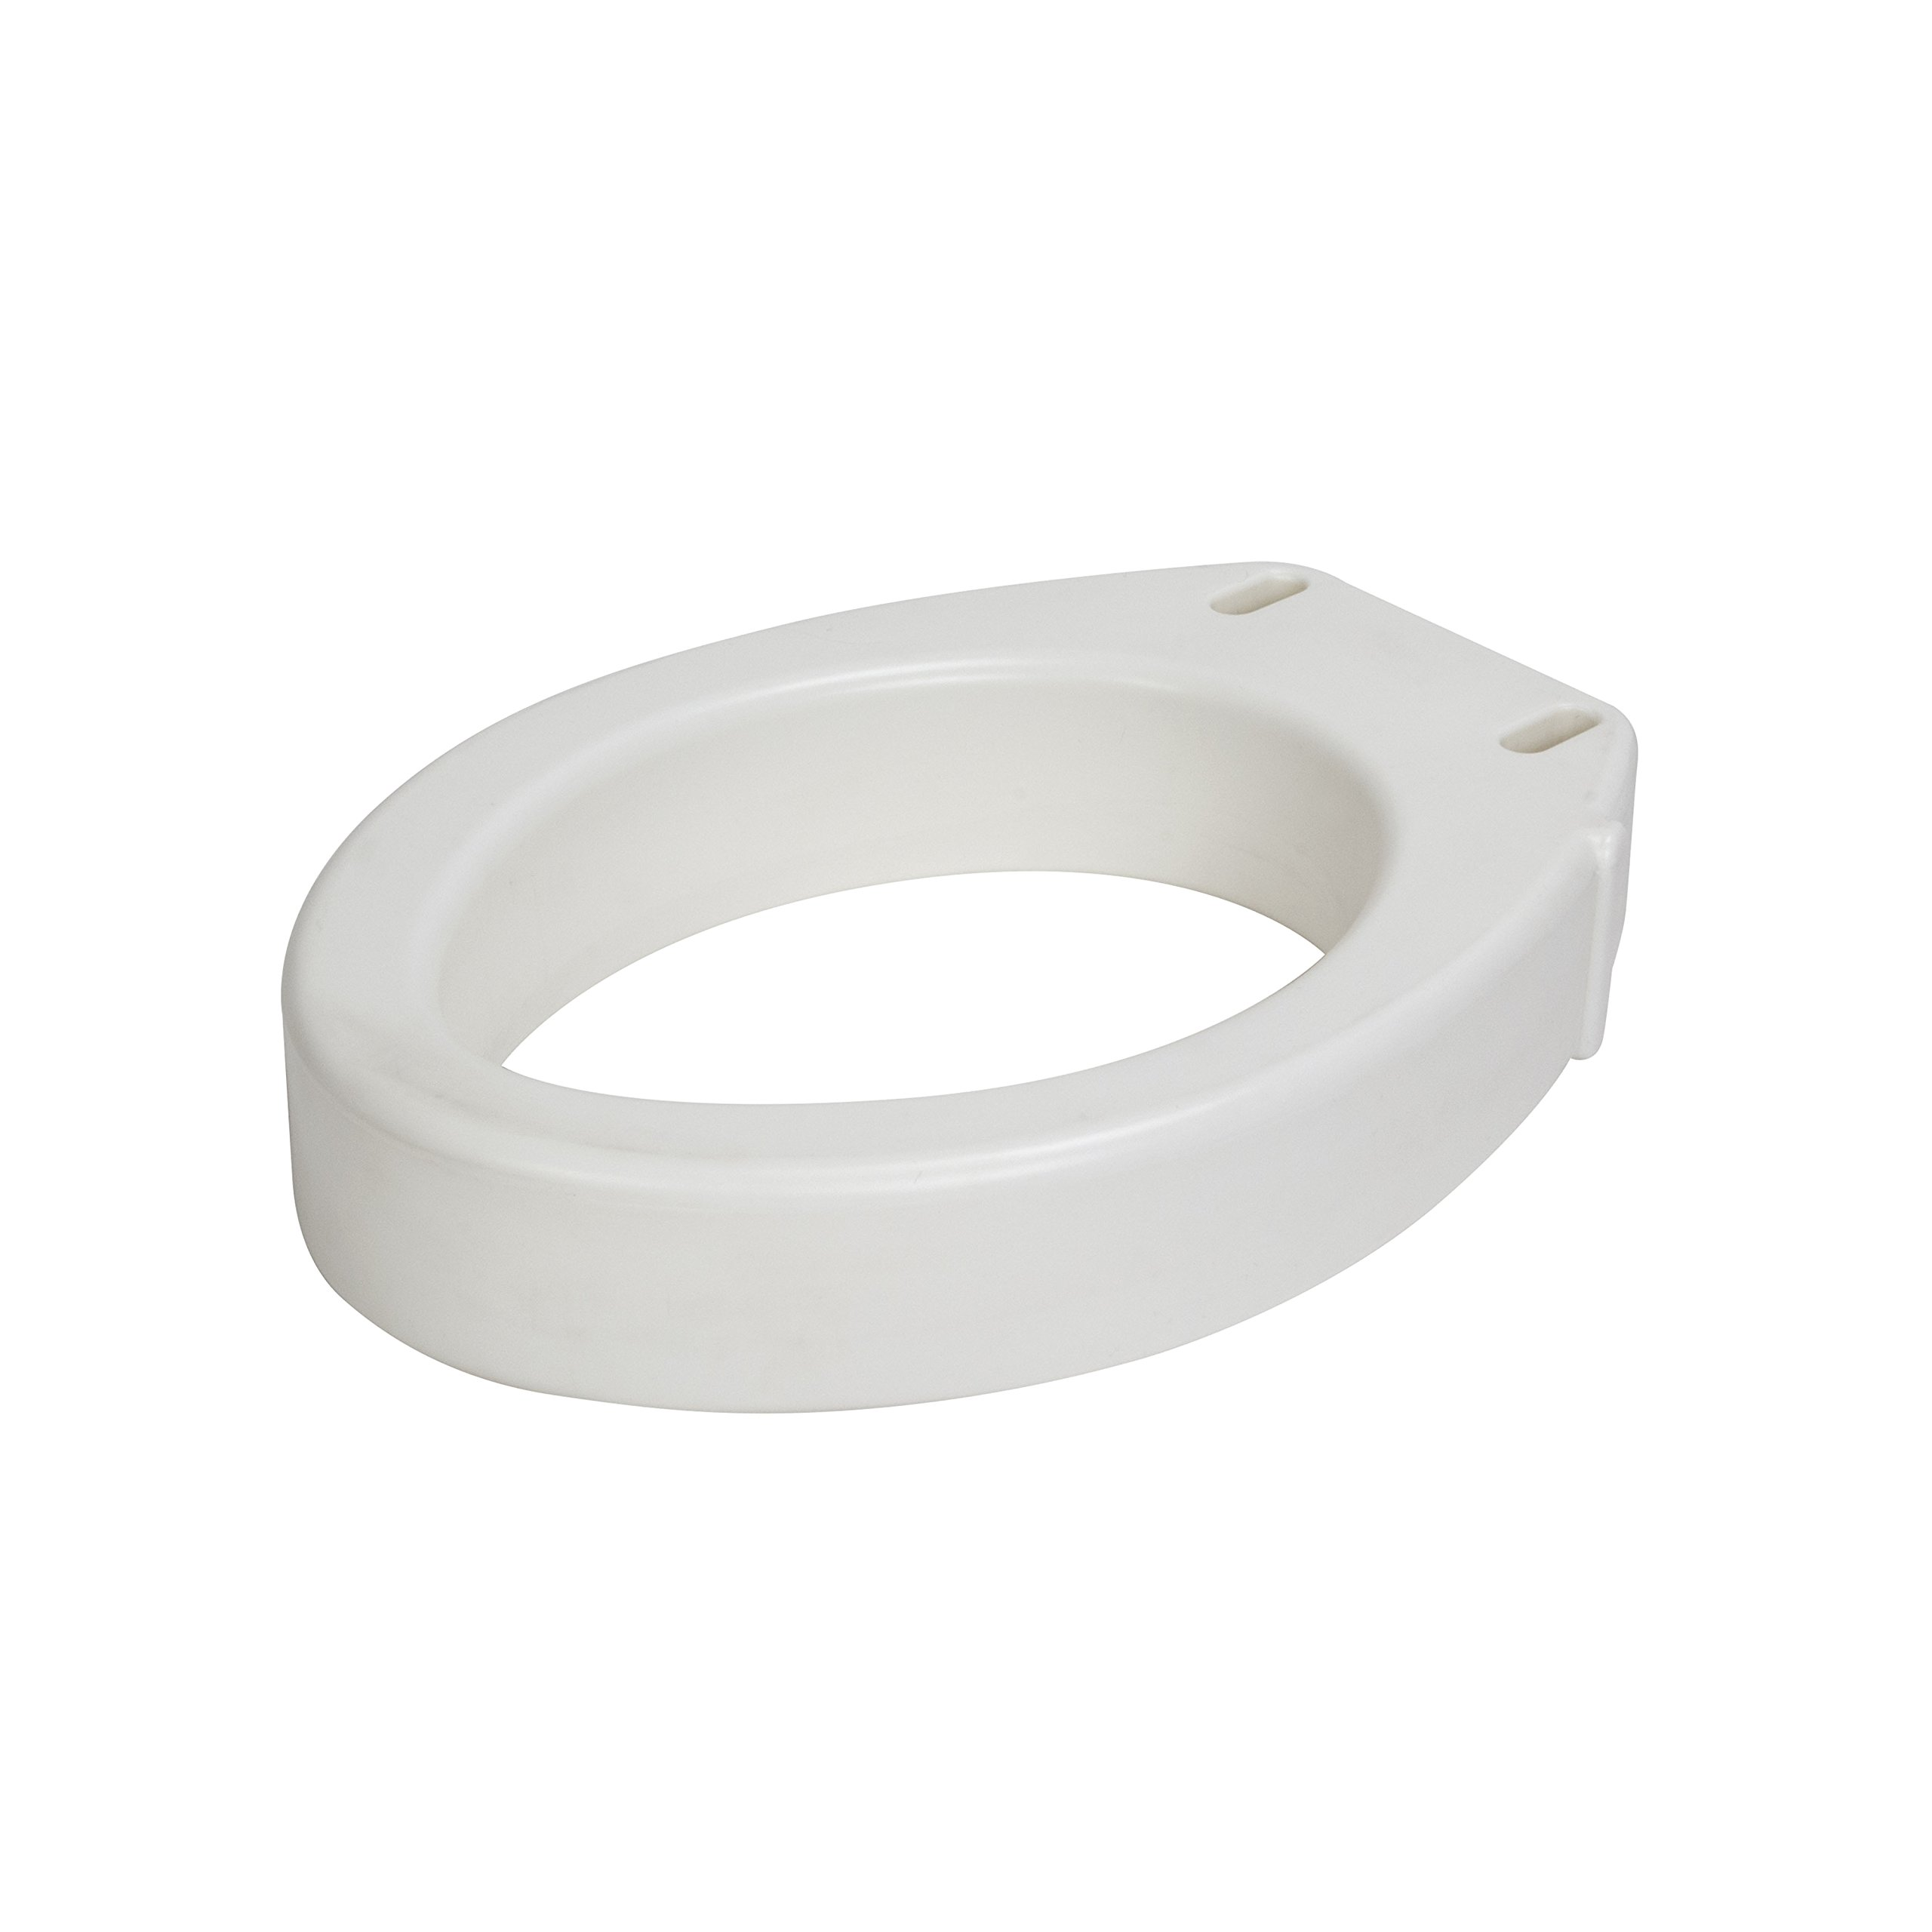 Drive Medical Toilet Seat Riser, Elongated by Drive Medical